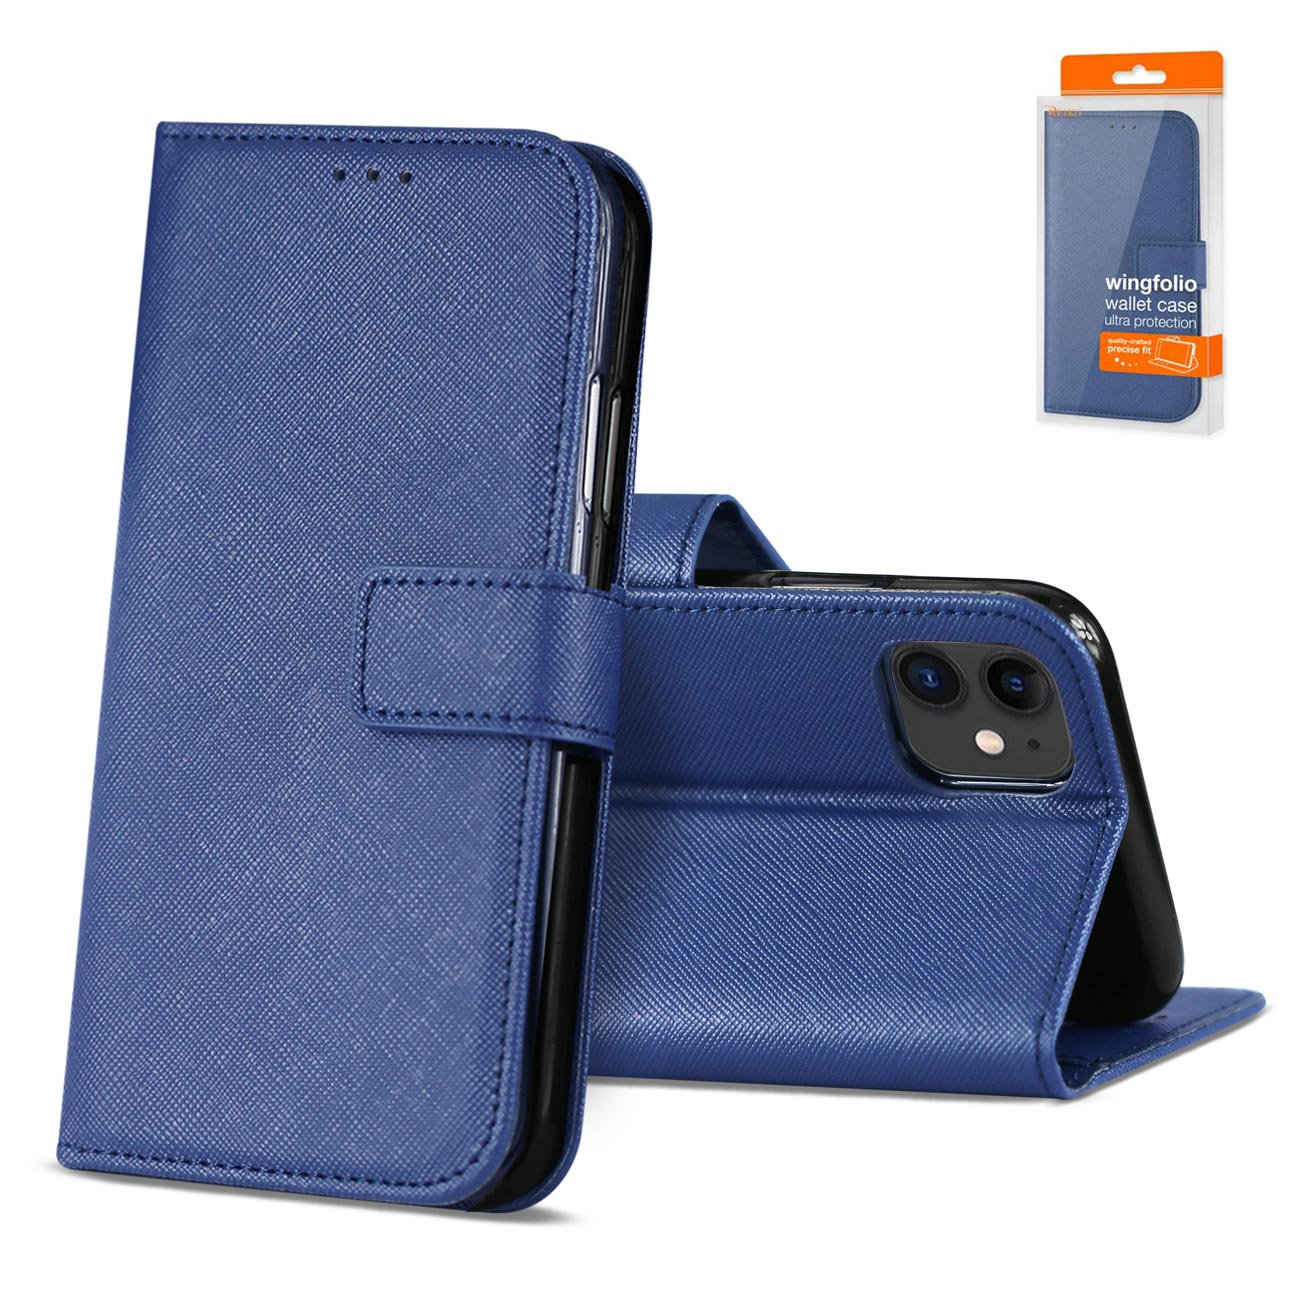 APPLE IPHONE 11 3-In-1 Wallet Case In BLUE